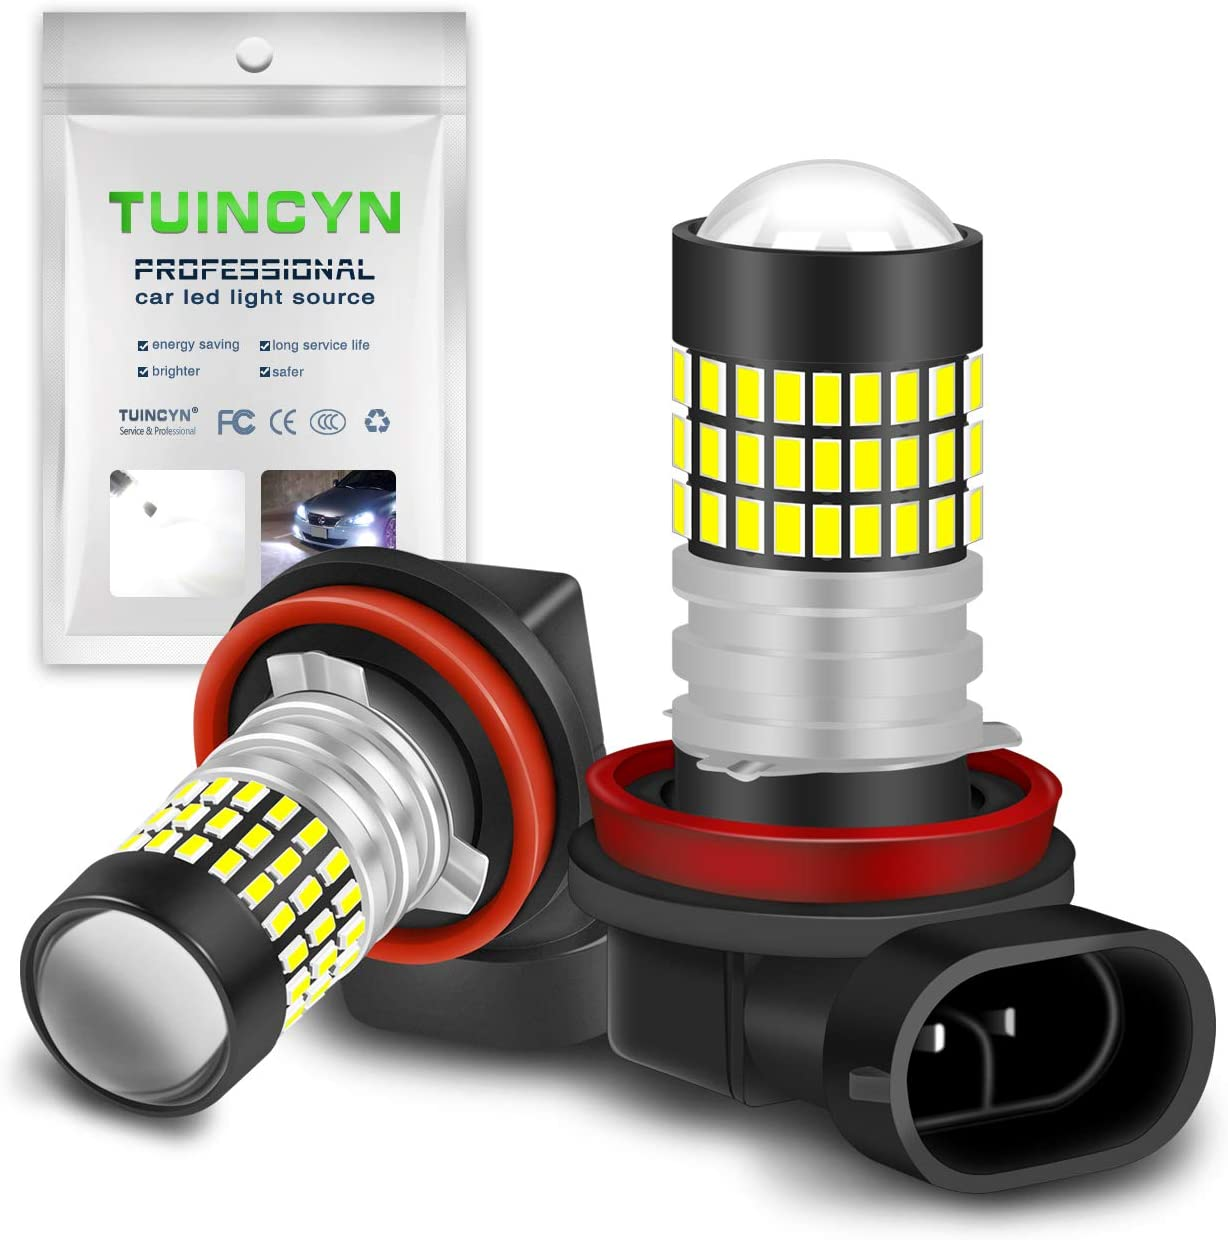 TUINCYN 880 886 890 892 LED Bulbs 900 Lumens 3014 78SMD Chips Super Bright Universally Used for Fog Light Daytime Running Light Automotive Driving Lamp DC 12V-24V 4W Pack of 2